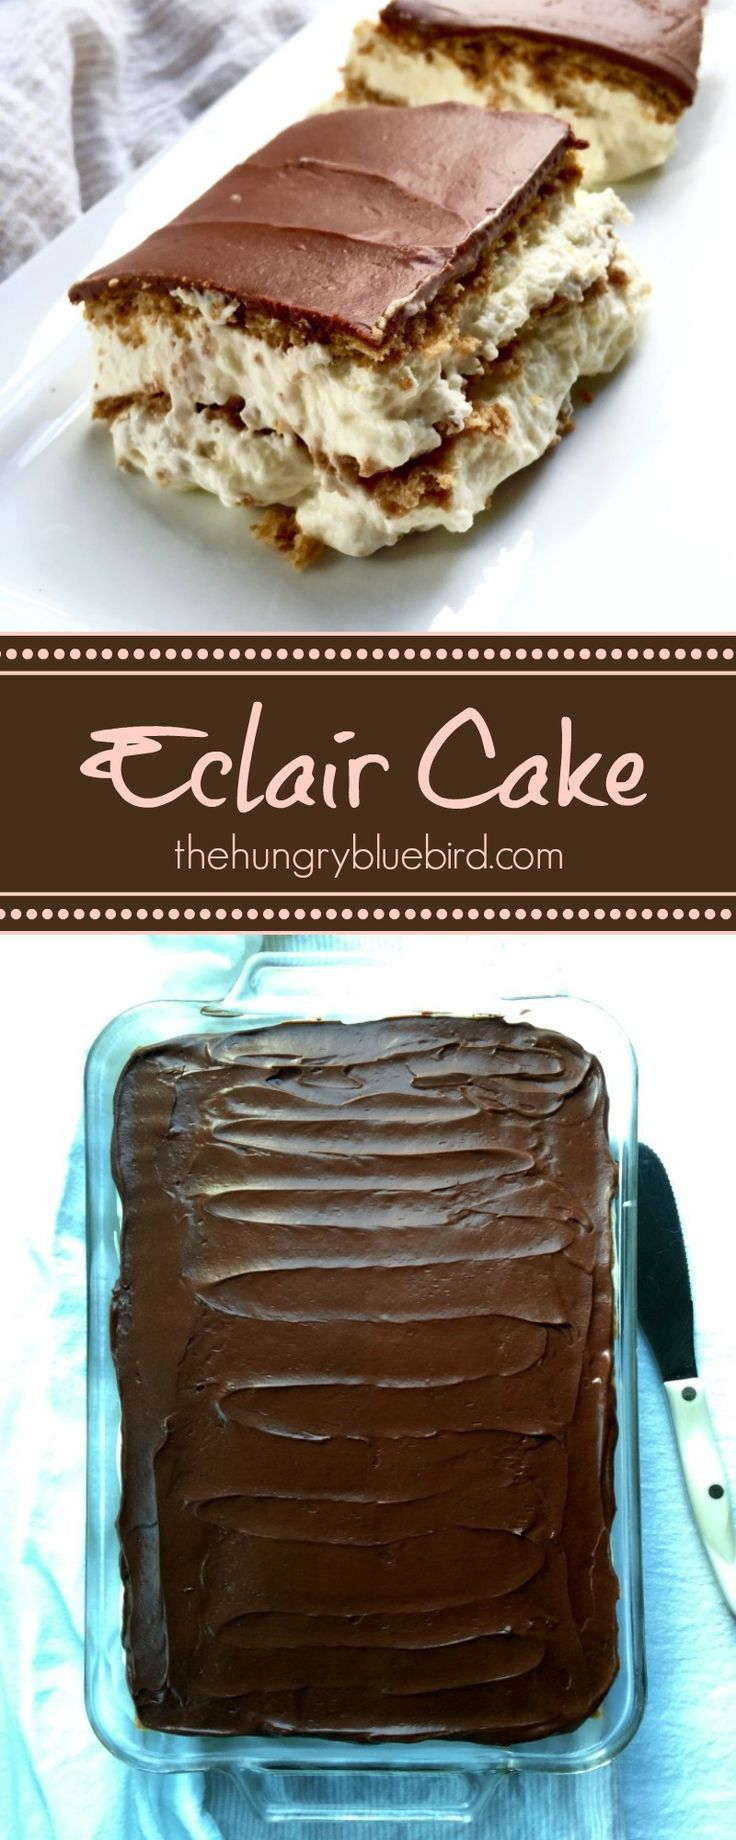 Éclair Cake, layers of vanilla whipped cream and graham crackers with chocolate glaze.